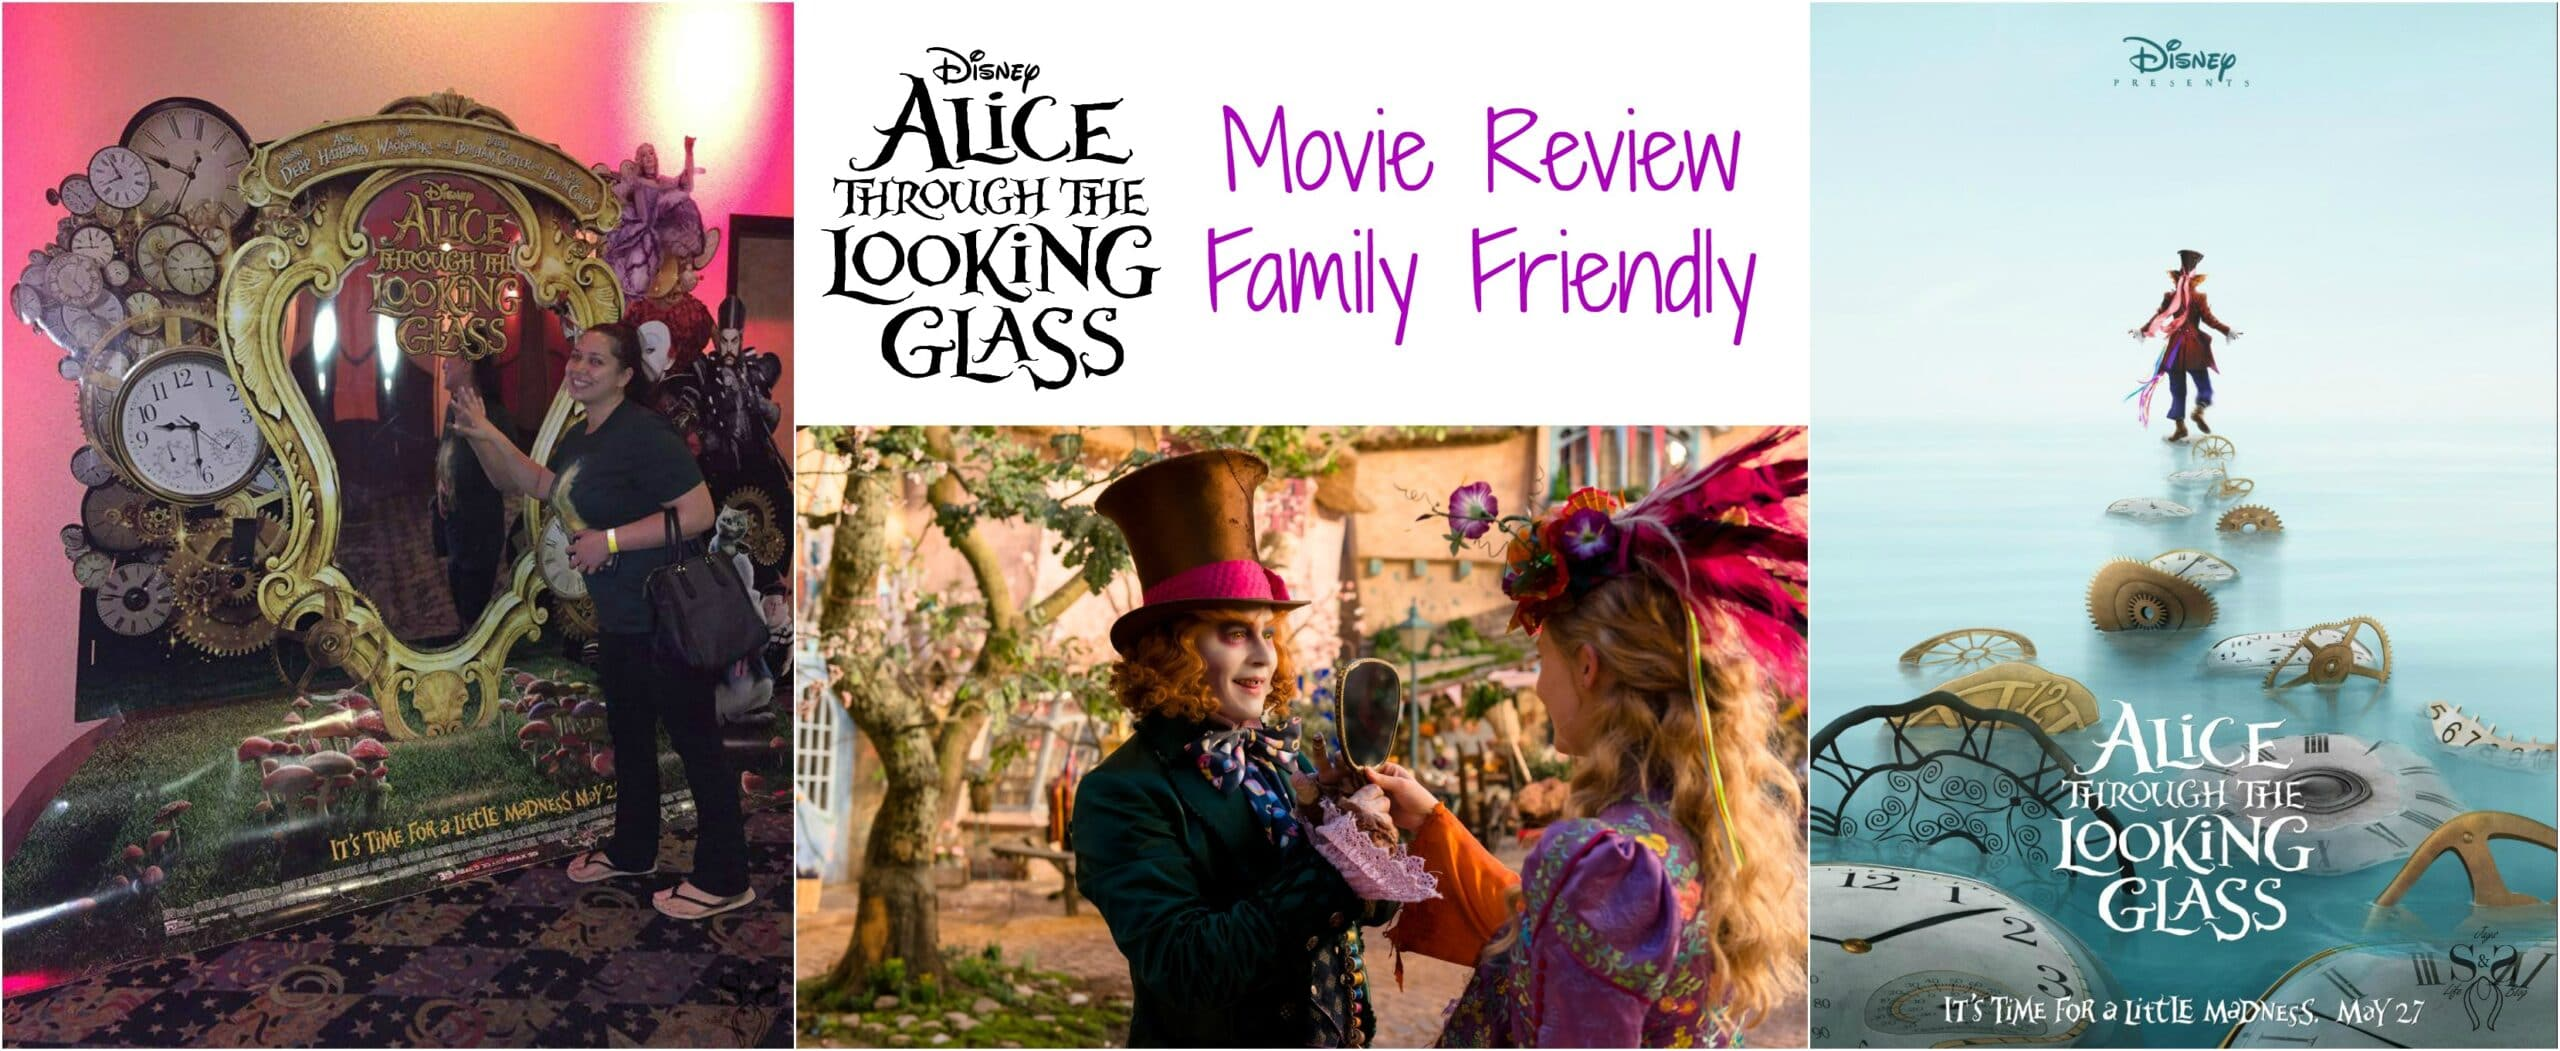 Alice Through The Looking Glass Movie Review – Family Friendly